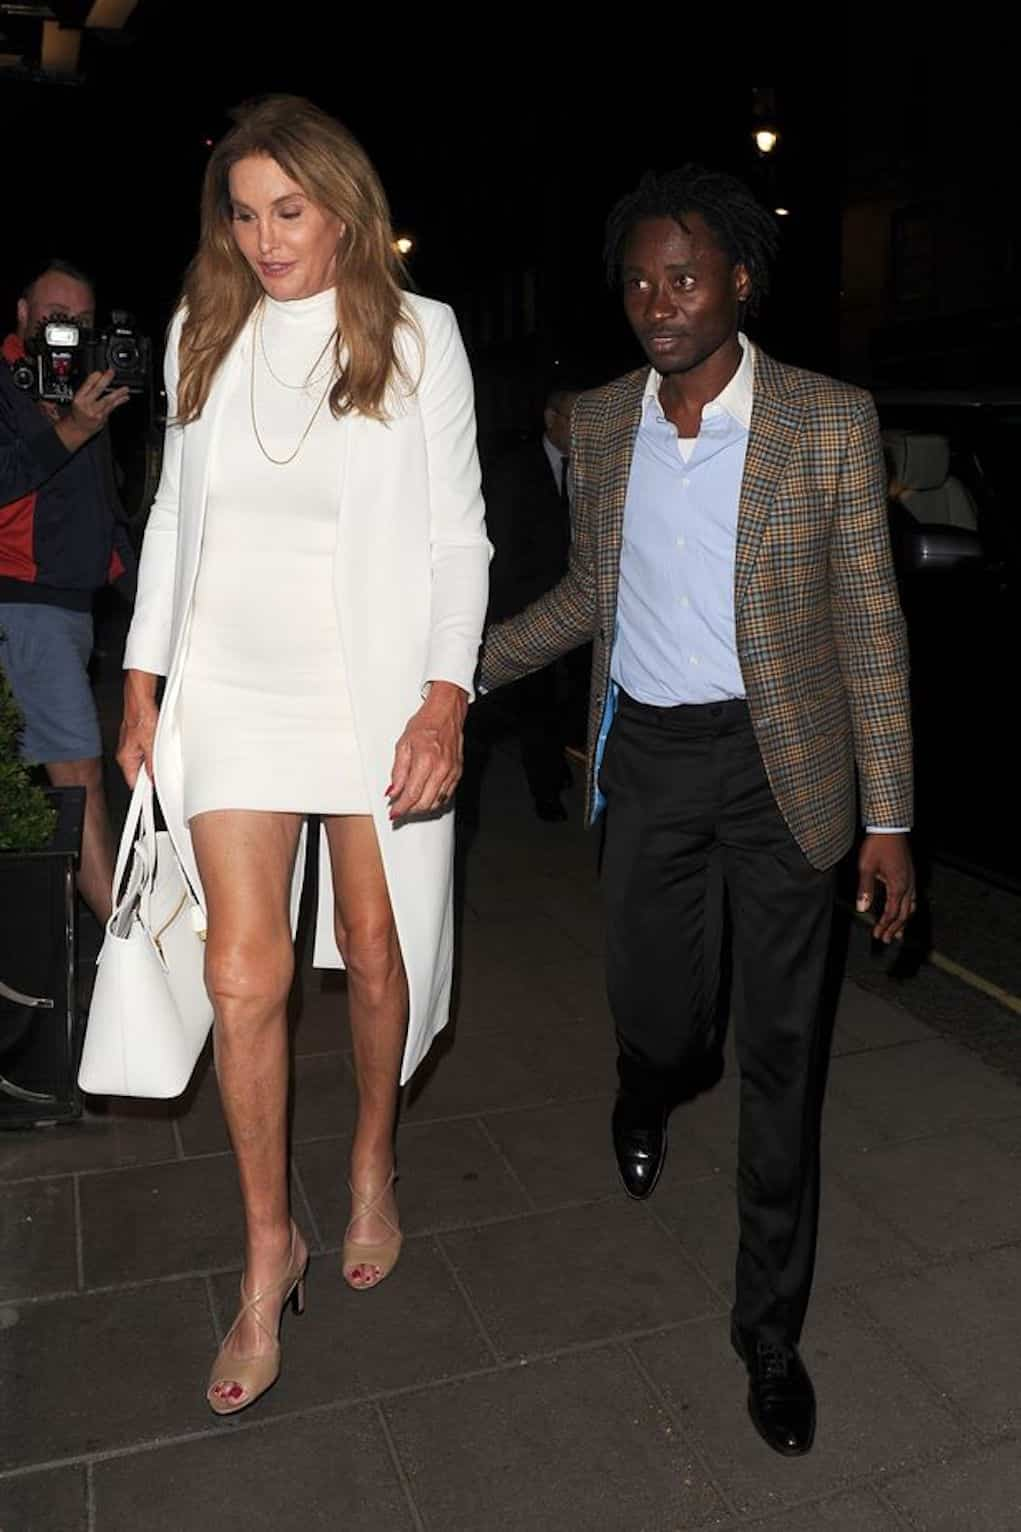 Caitlyn Jenner Hits The Town With Black Boyfriend-1385